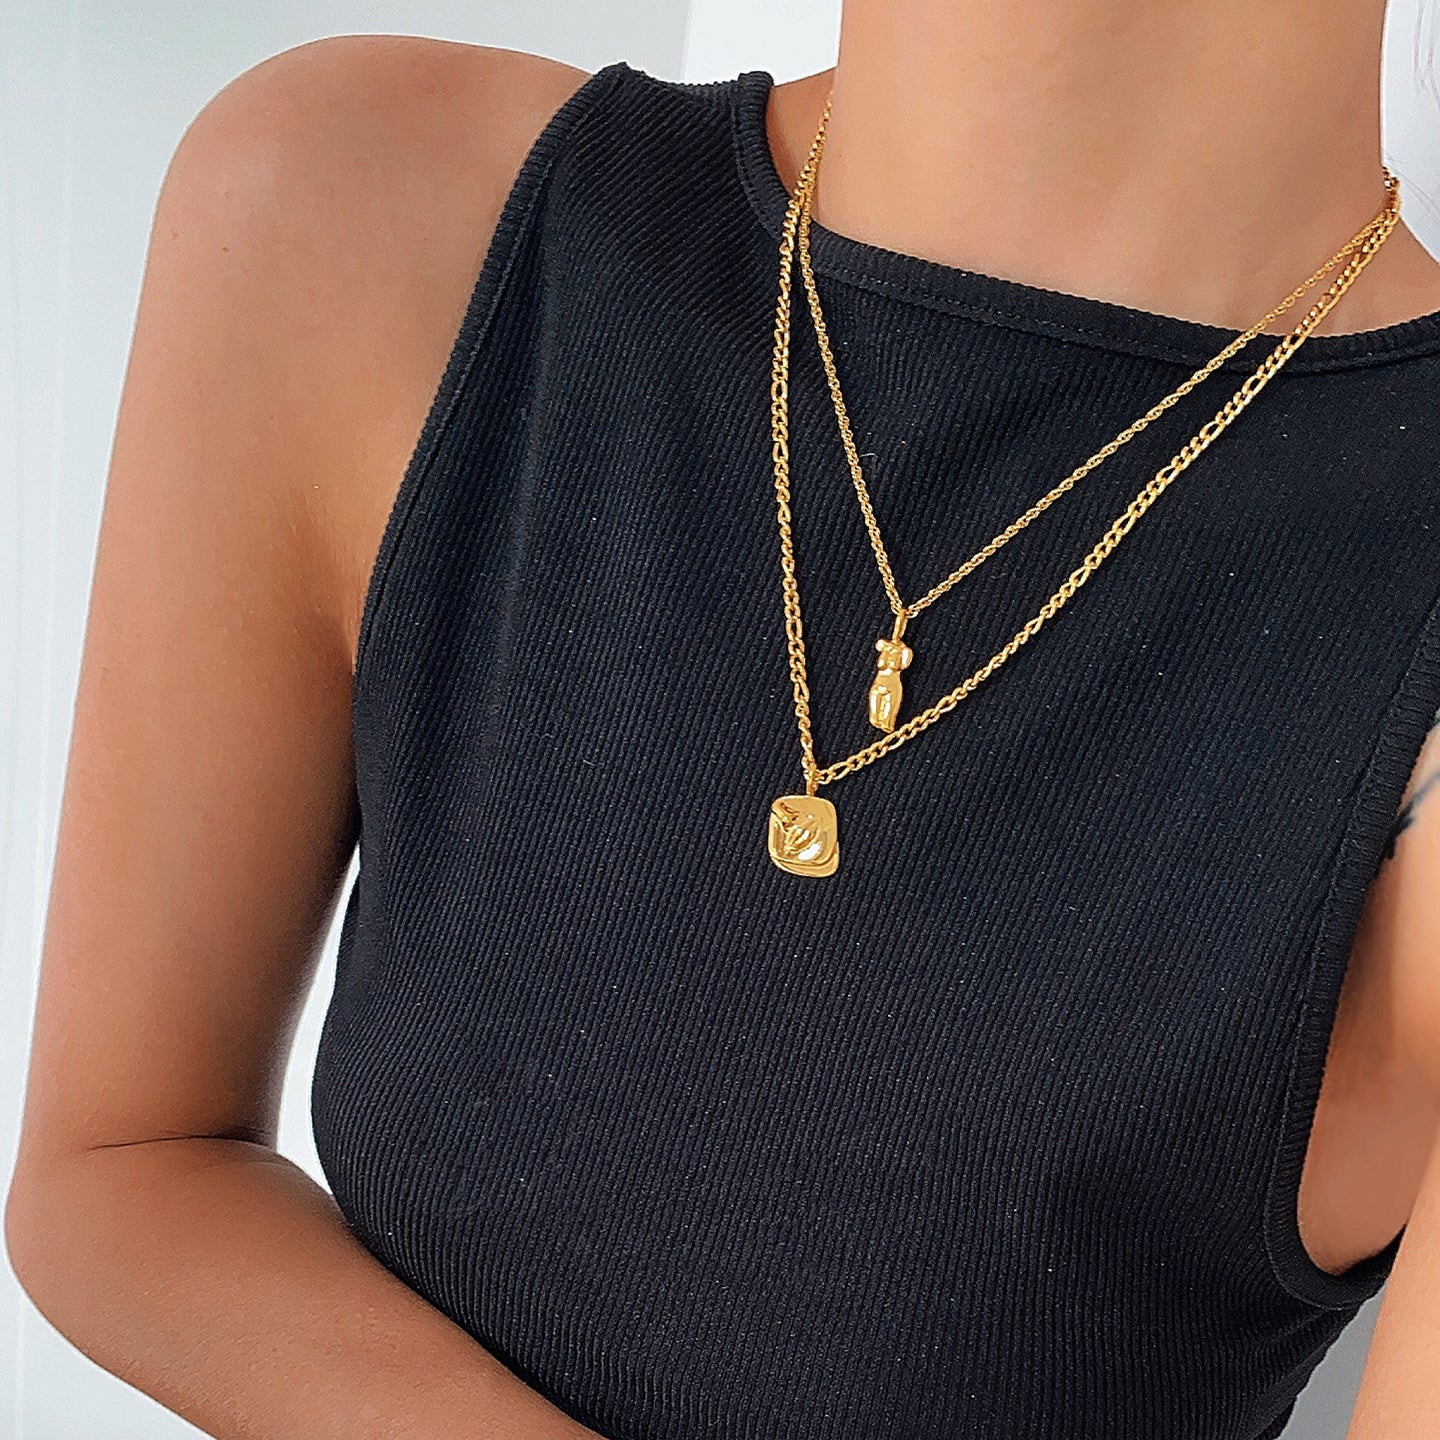 18k Gold Plated Female Body Necklace